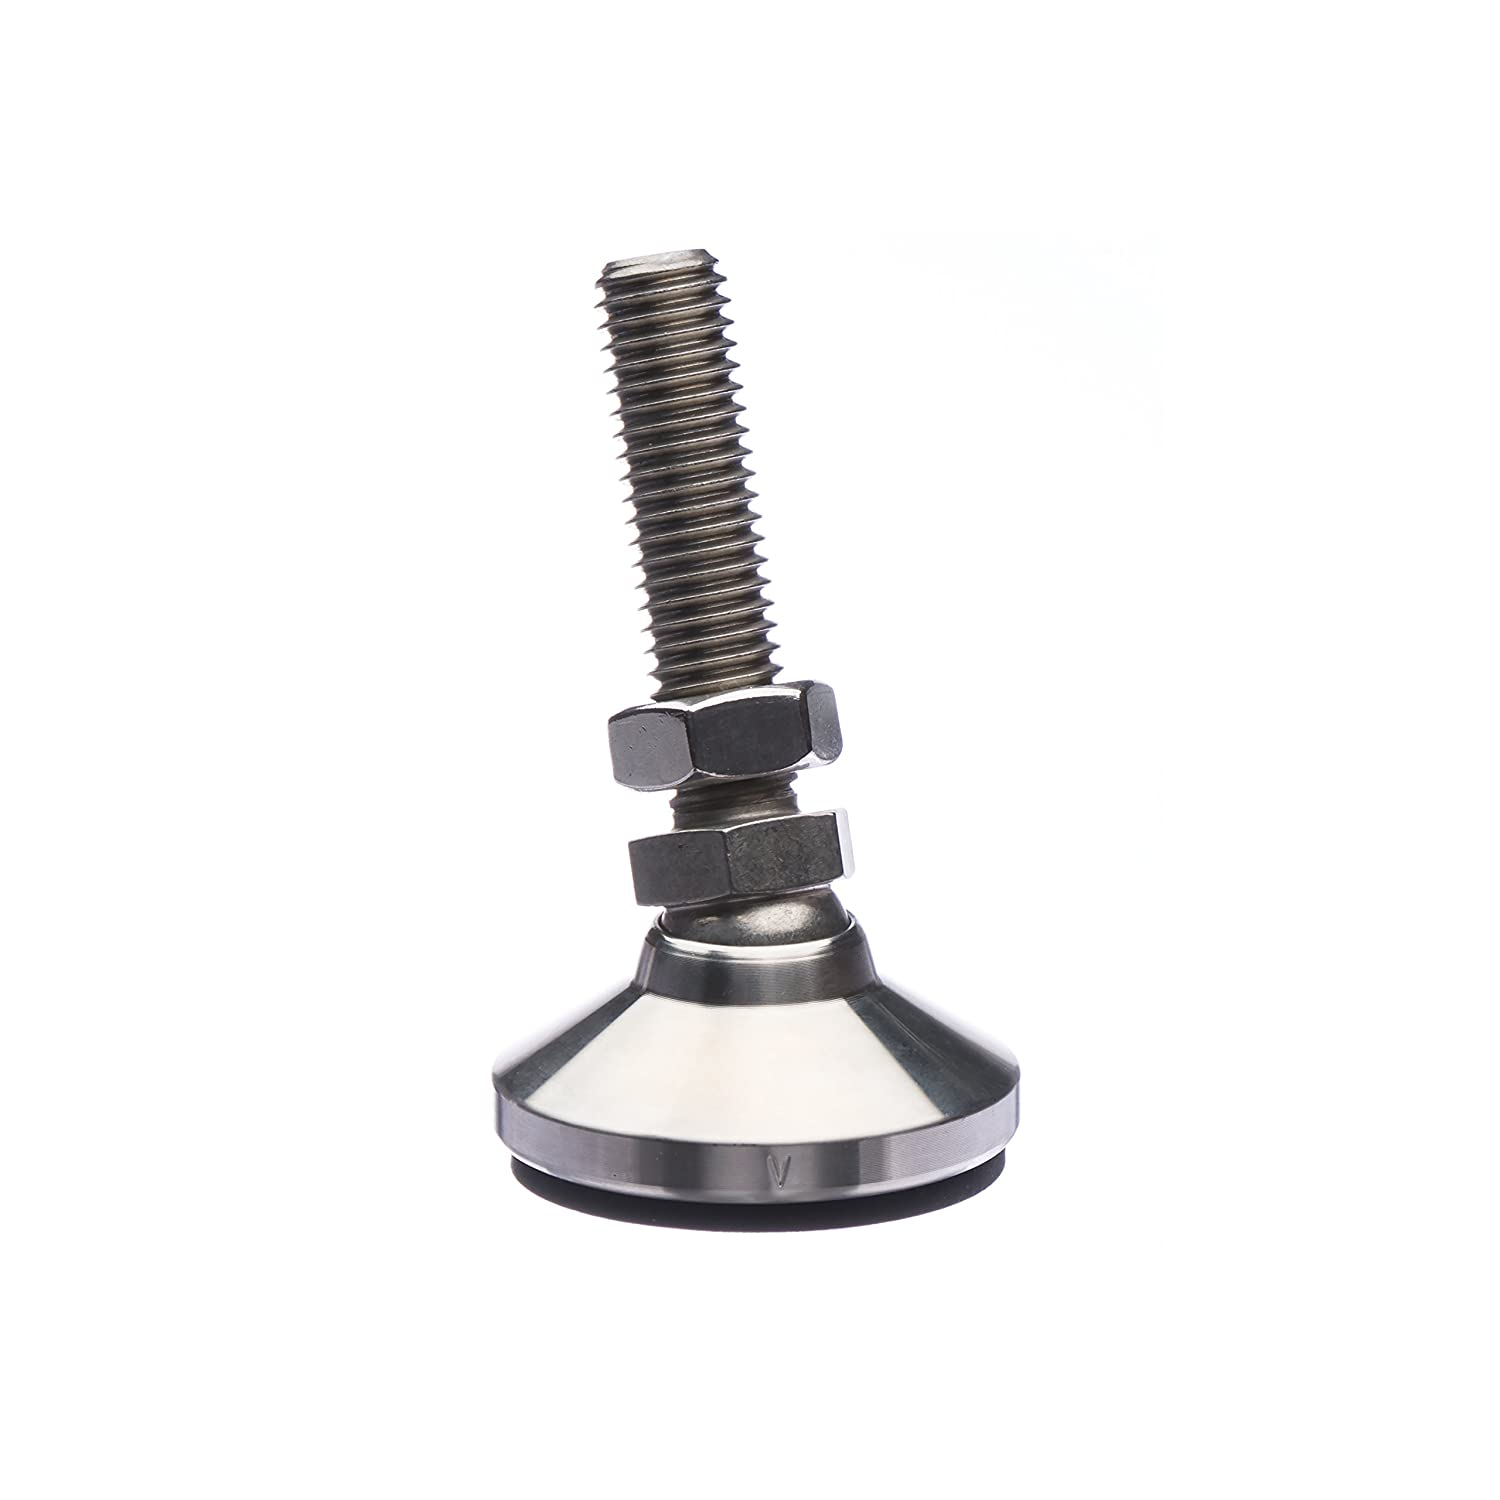 Stainless Steel Vlier HVESSP310B High Value Series Leveling Device 3//4-10 Thread Size 2 1//8 Long